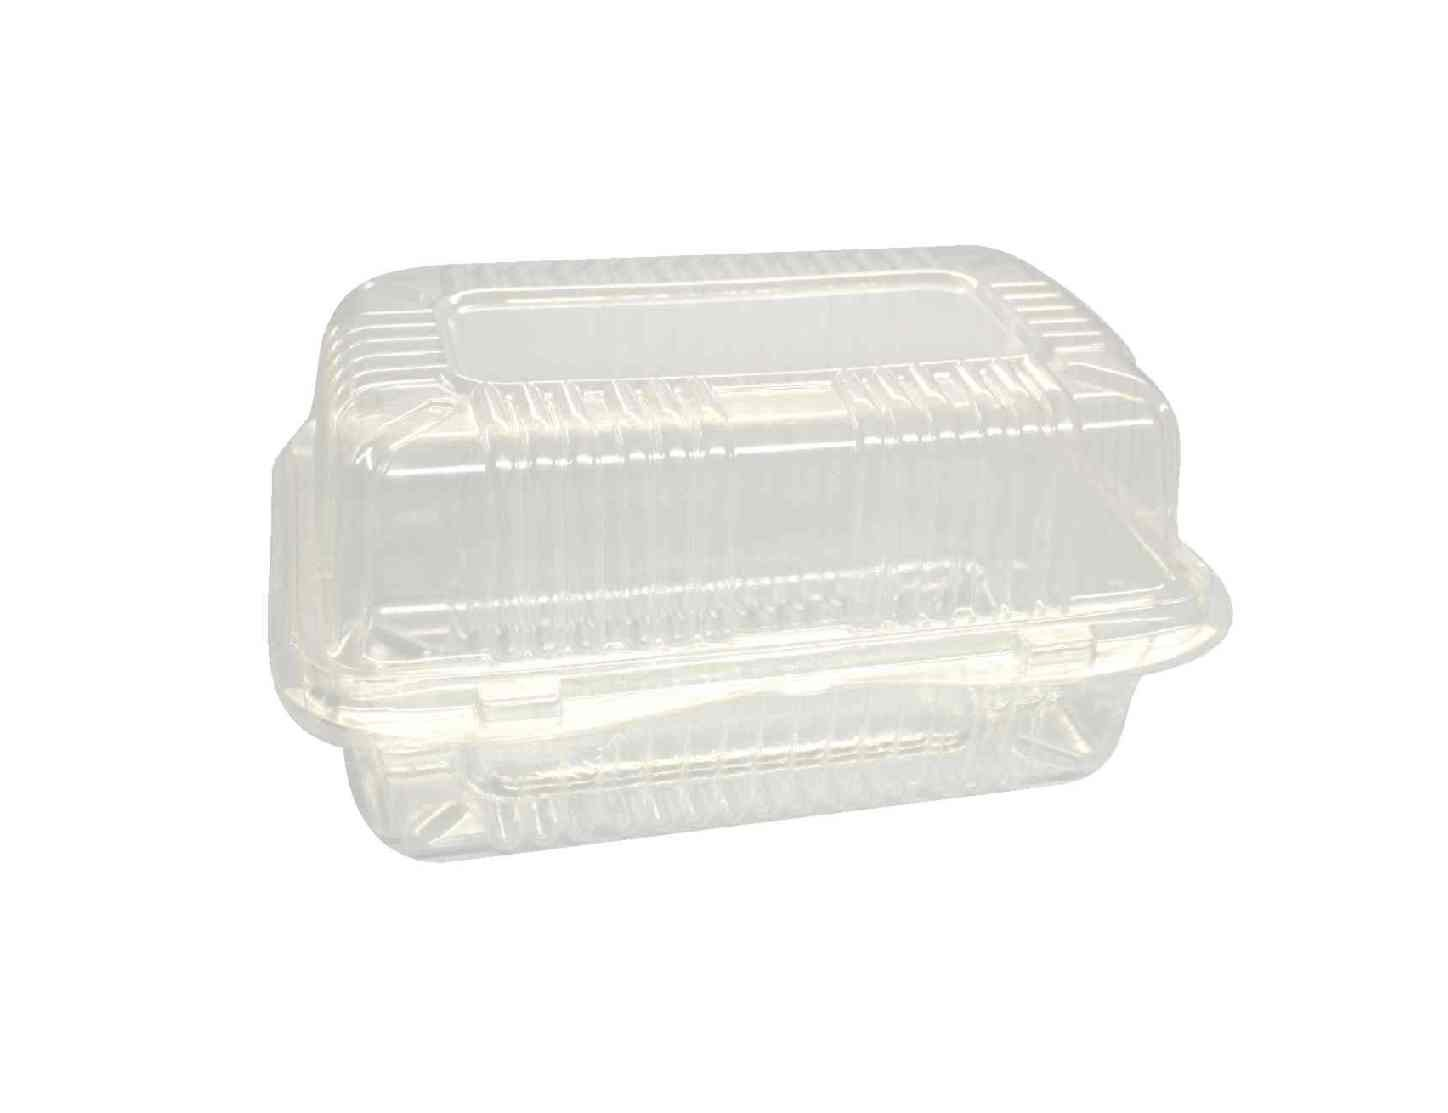 Choice-Pac L1P-1203 Polyethylene Terephthalate Medium Clamshell Container with 2 Button Front Closure, 8-1/2